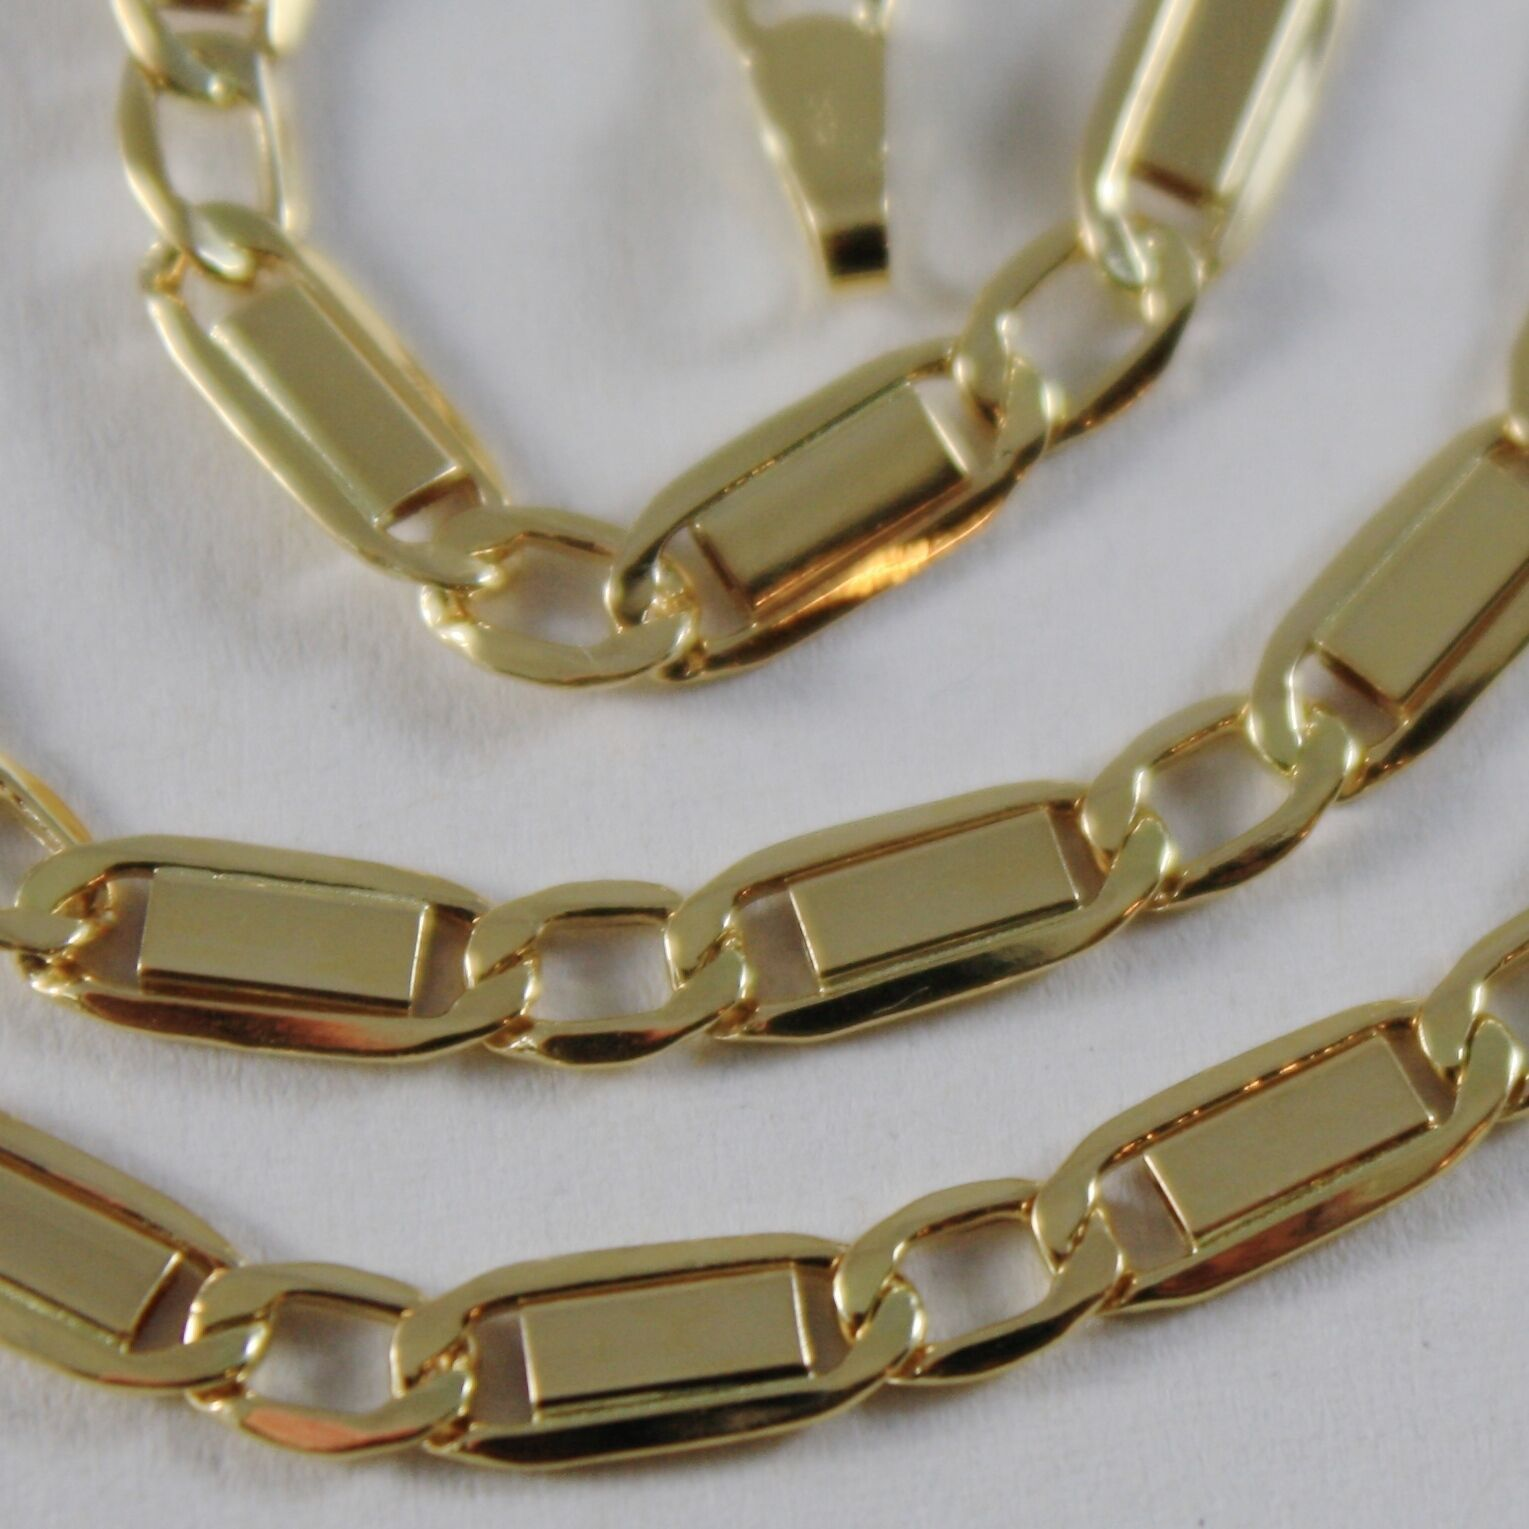 18K YELLOW GOLD CHAIN FLAT GOURMETTE ALTERNATE 4 MM OVAL LINK 17.7 MADE IN ITALY